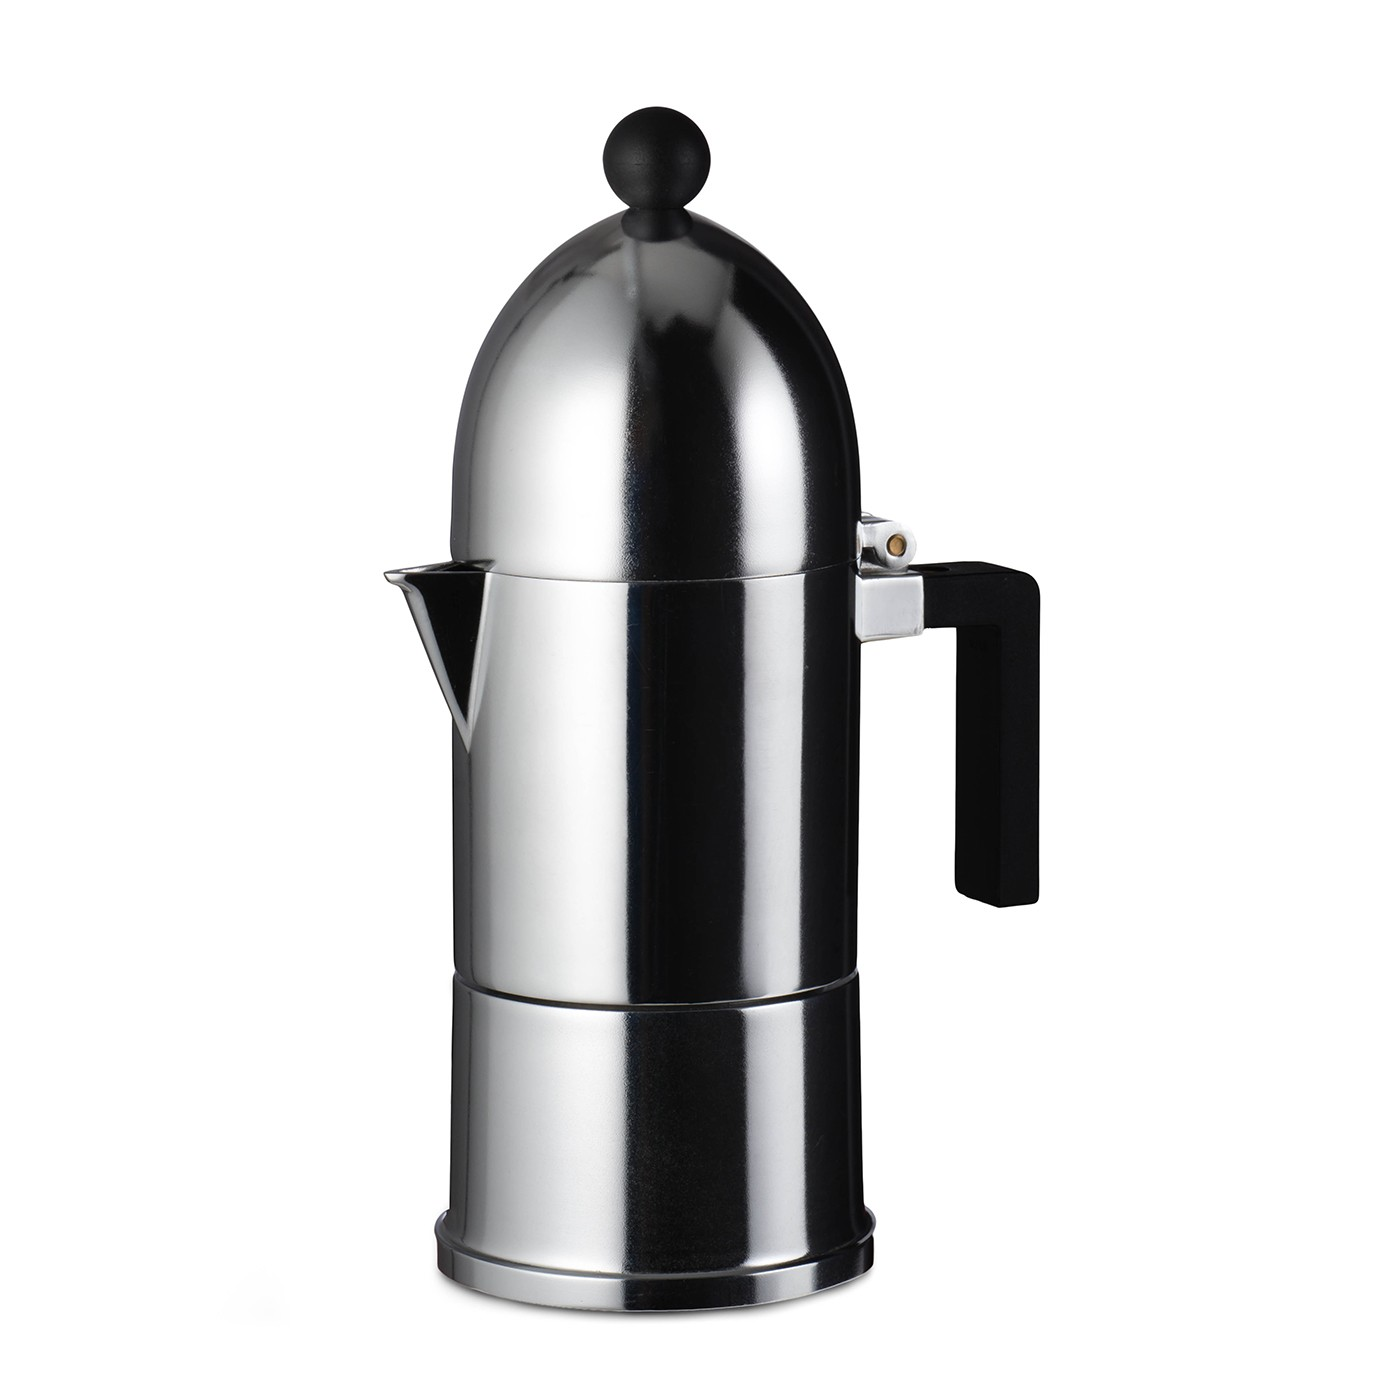 Alessi Espressokocher La Cupola Coffee Maker 6 Cups